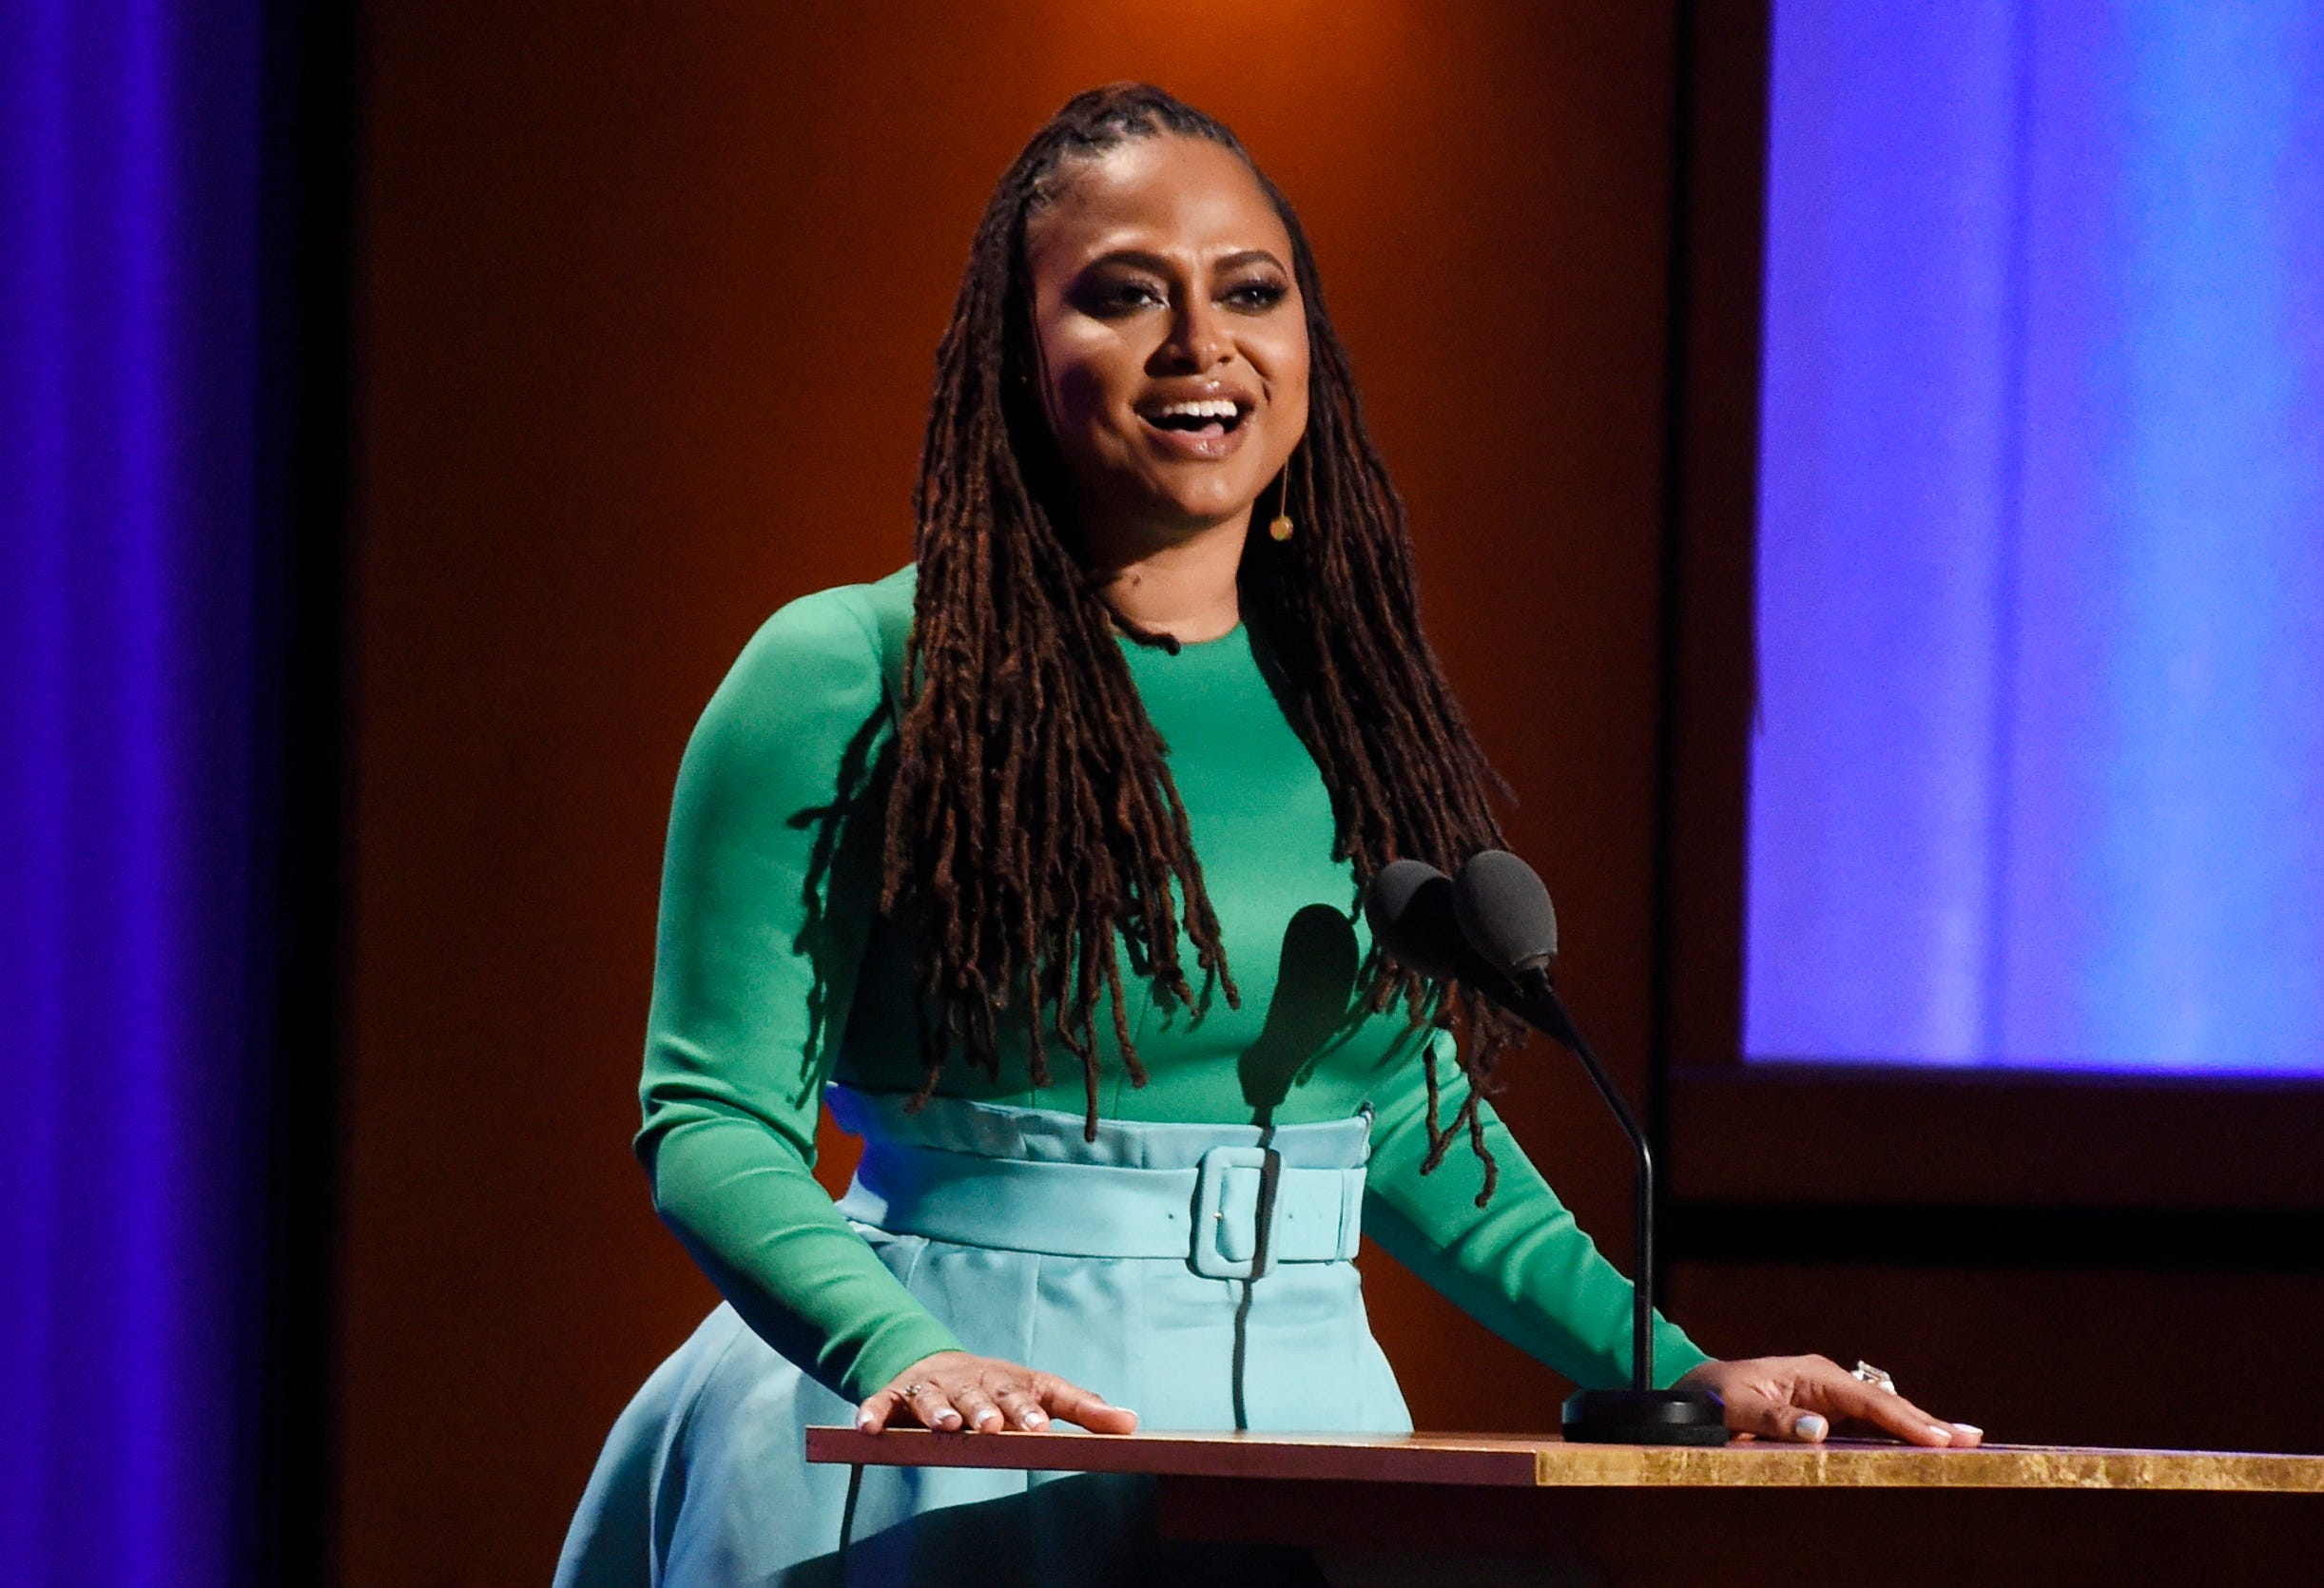 Ava DuVernay applauds 'respectful' coverage of late Nipsey Hussle: 'I have been motivated'